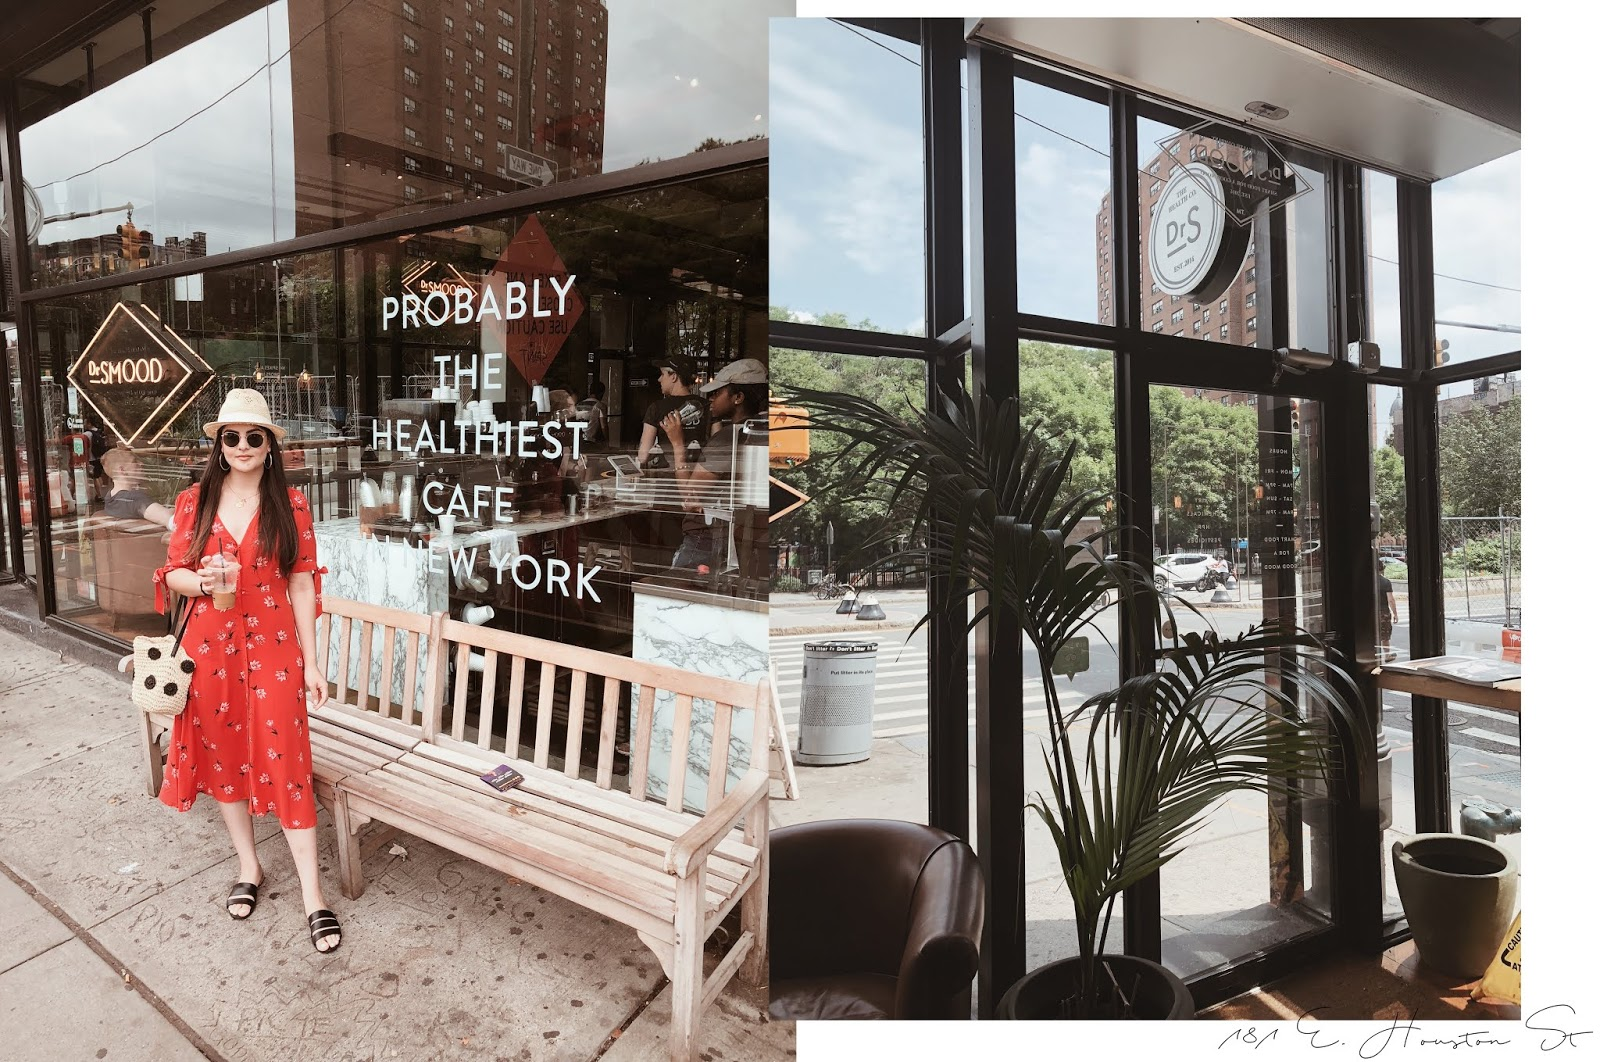 new york instagram places guide food spots instagrammable worthy dr smood 2